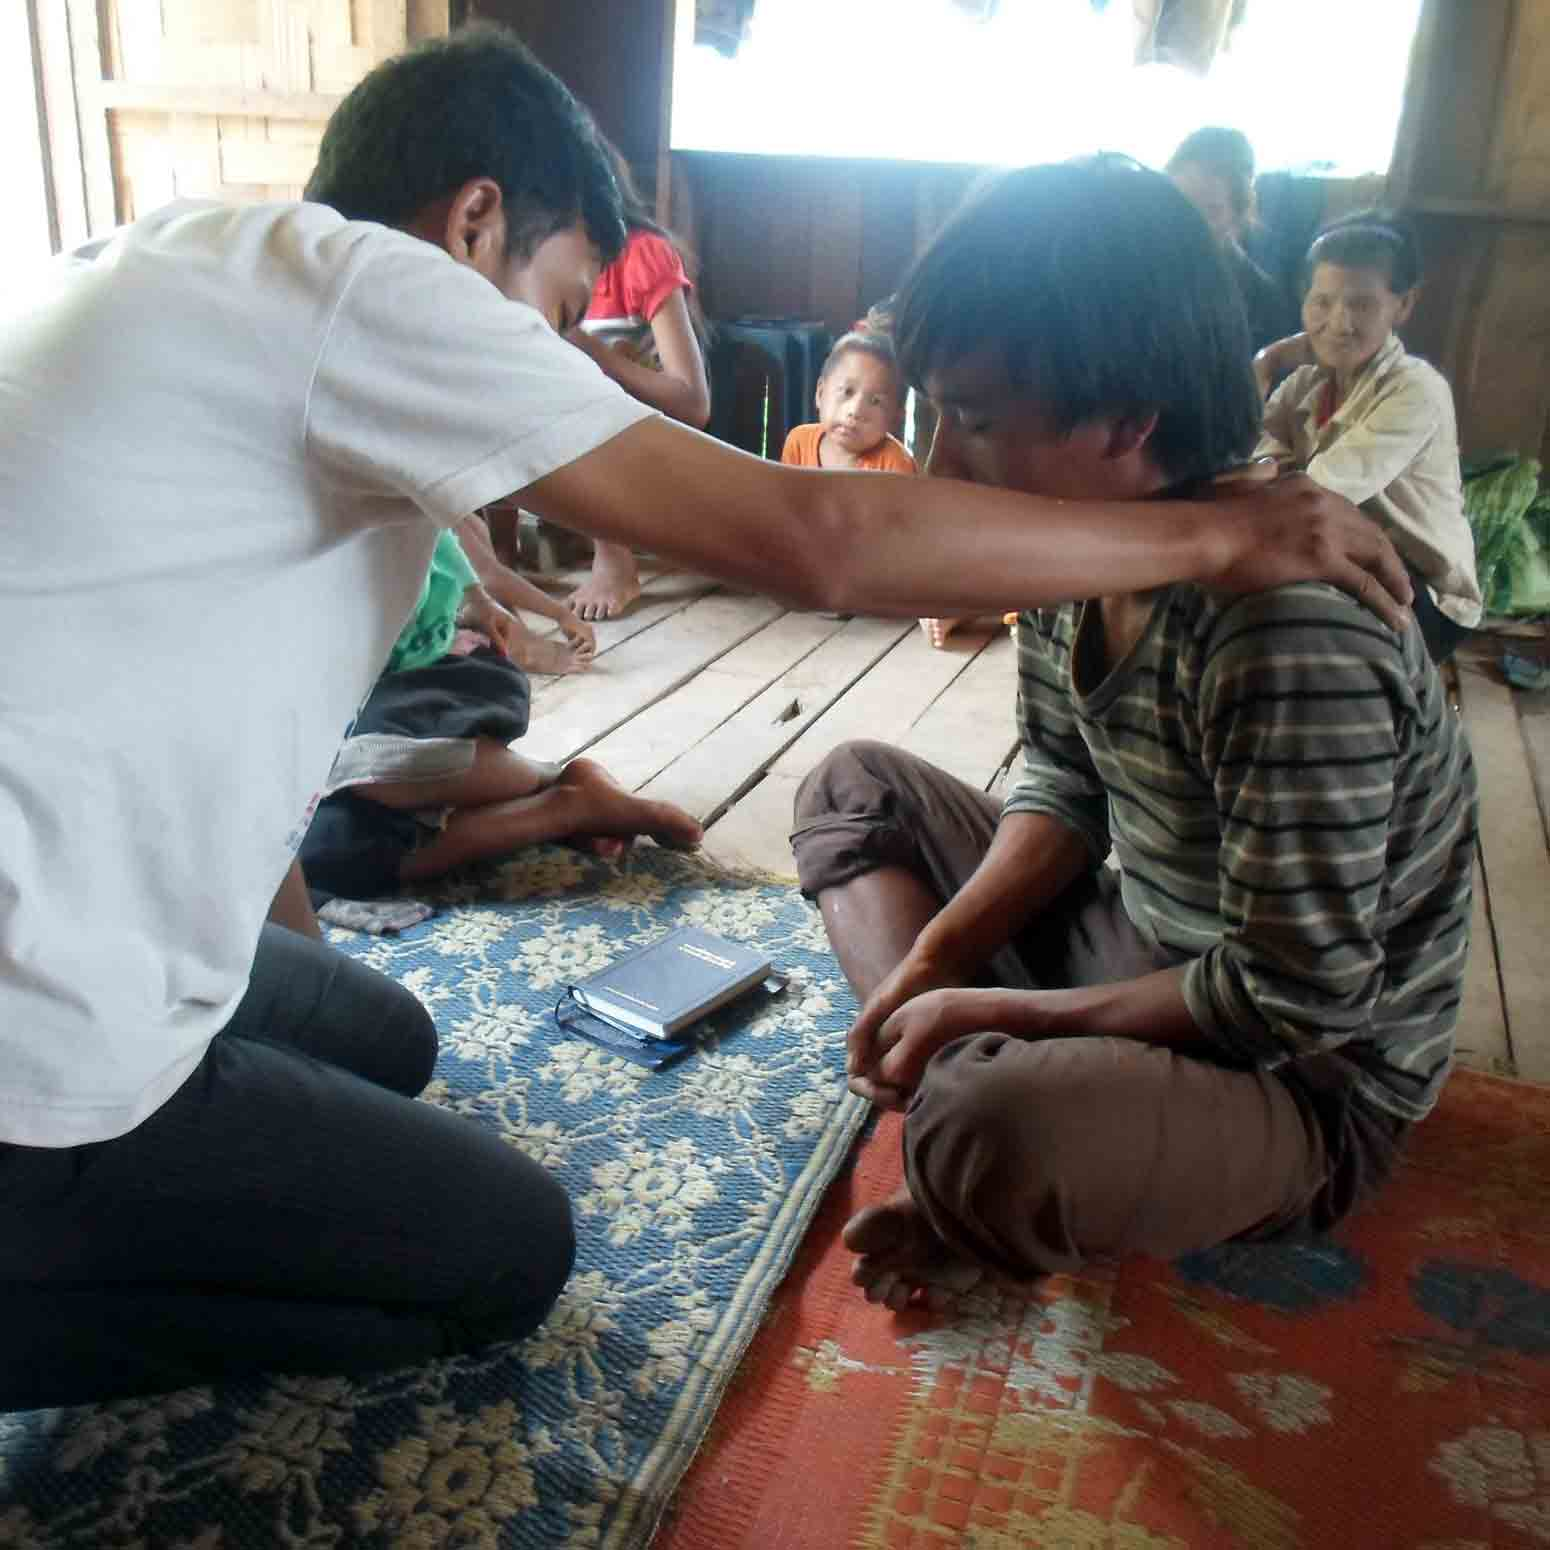 Believers in Laos frequently see God move when they pray for healing.